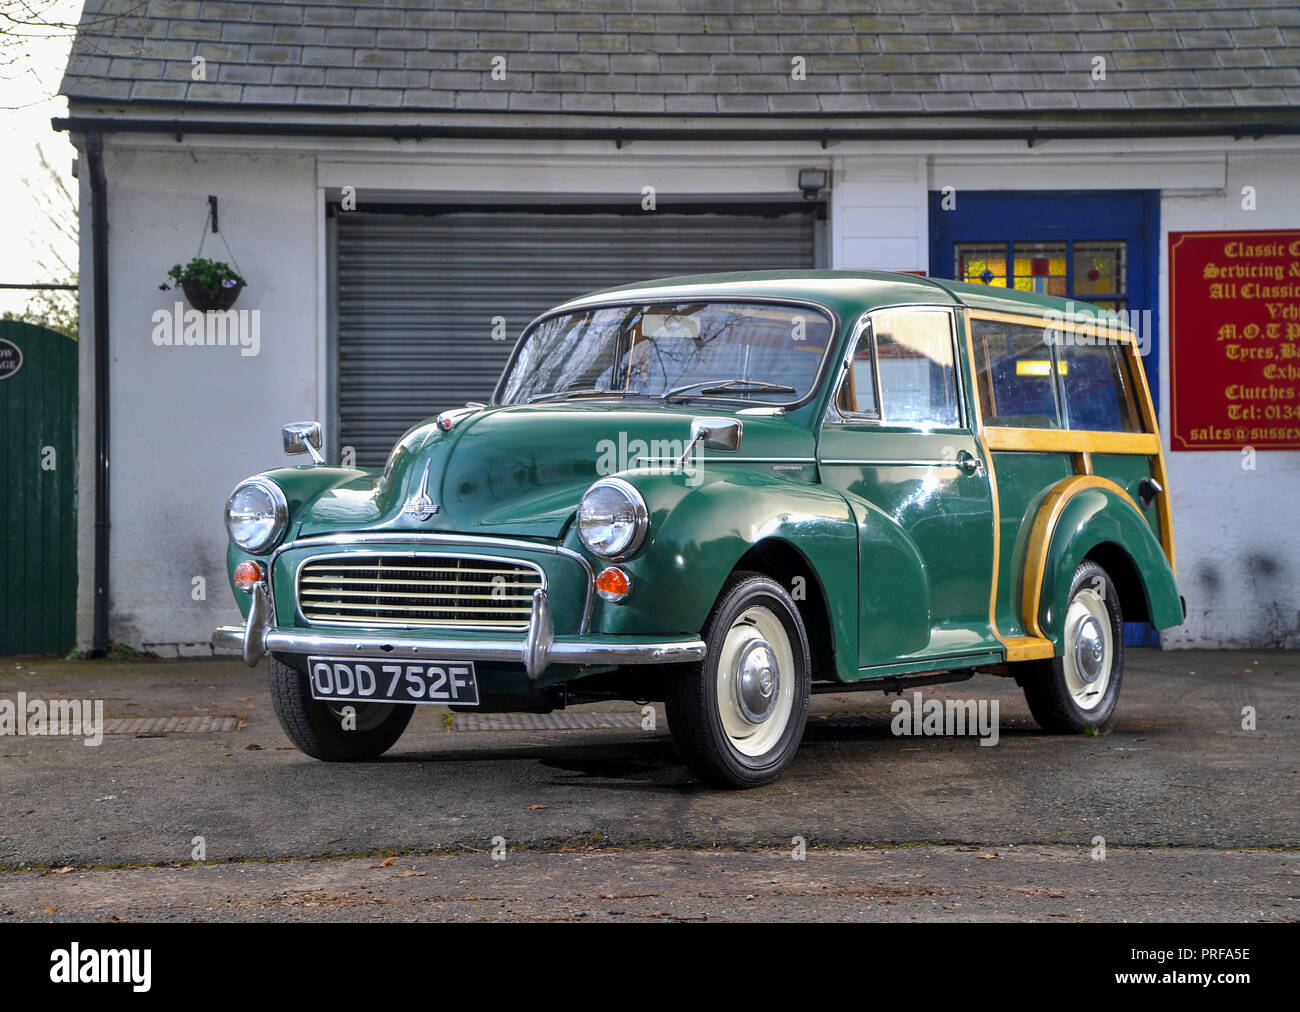 1968 Morris Traveller classic British car - Stock Image